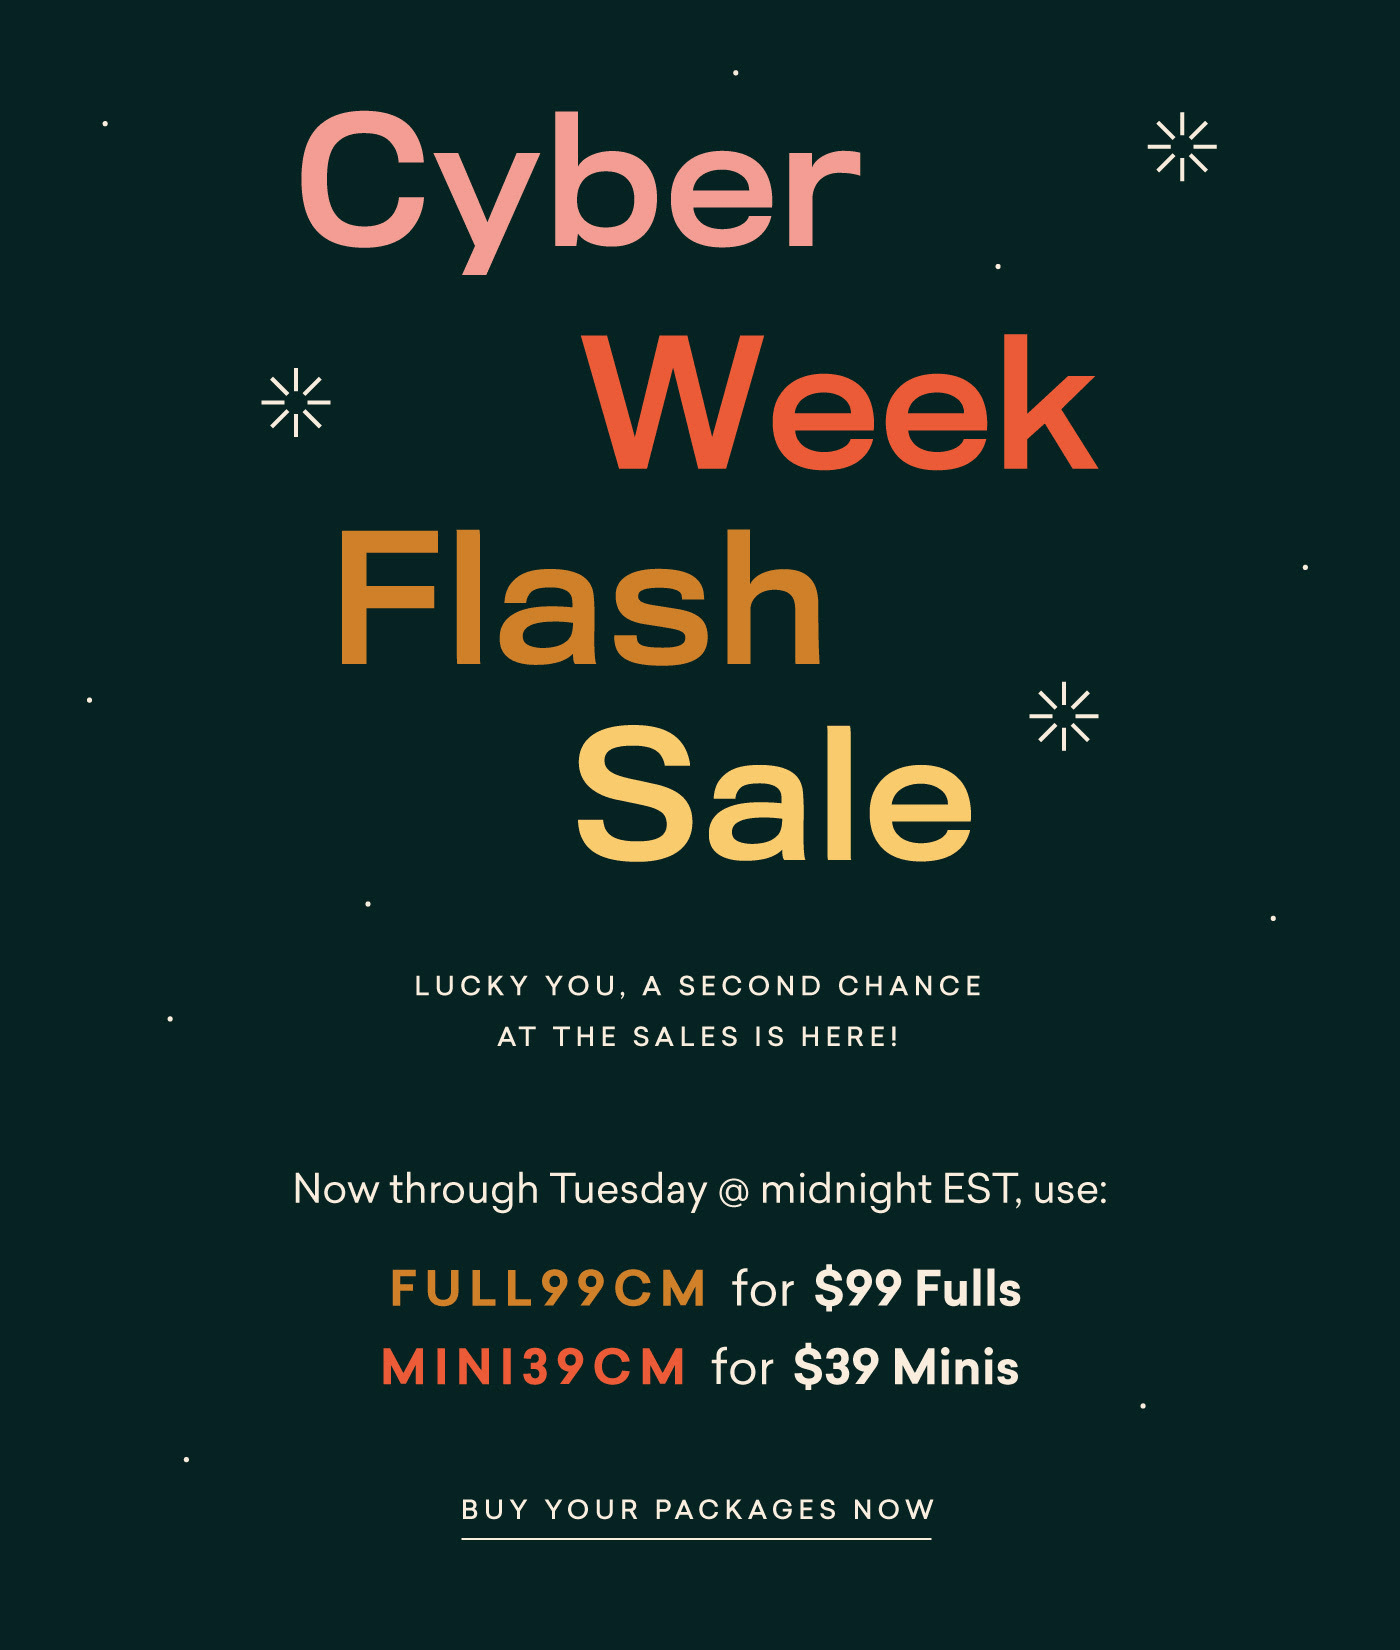 Havenly Cyber Week Coupon: Get Full Design Package For Only $99 and Mini Design Package For Only $39!